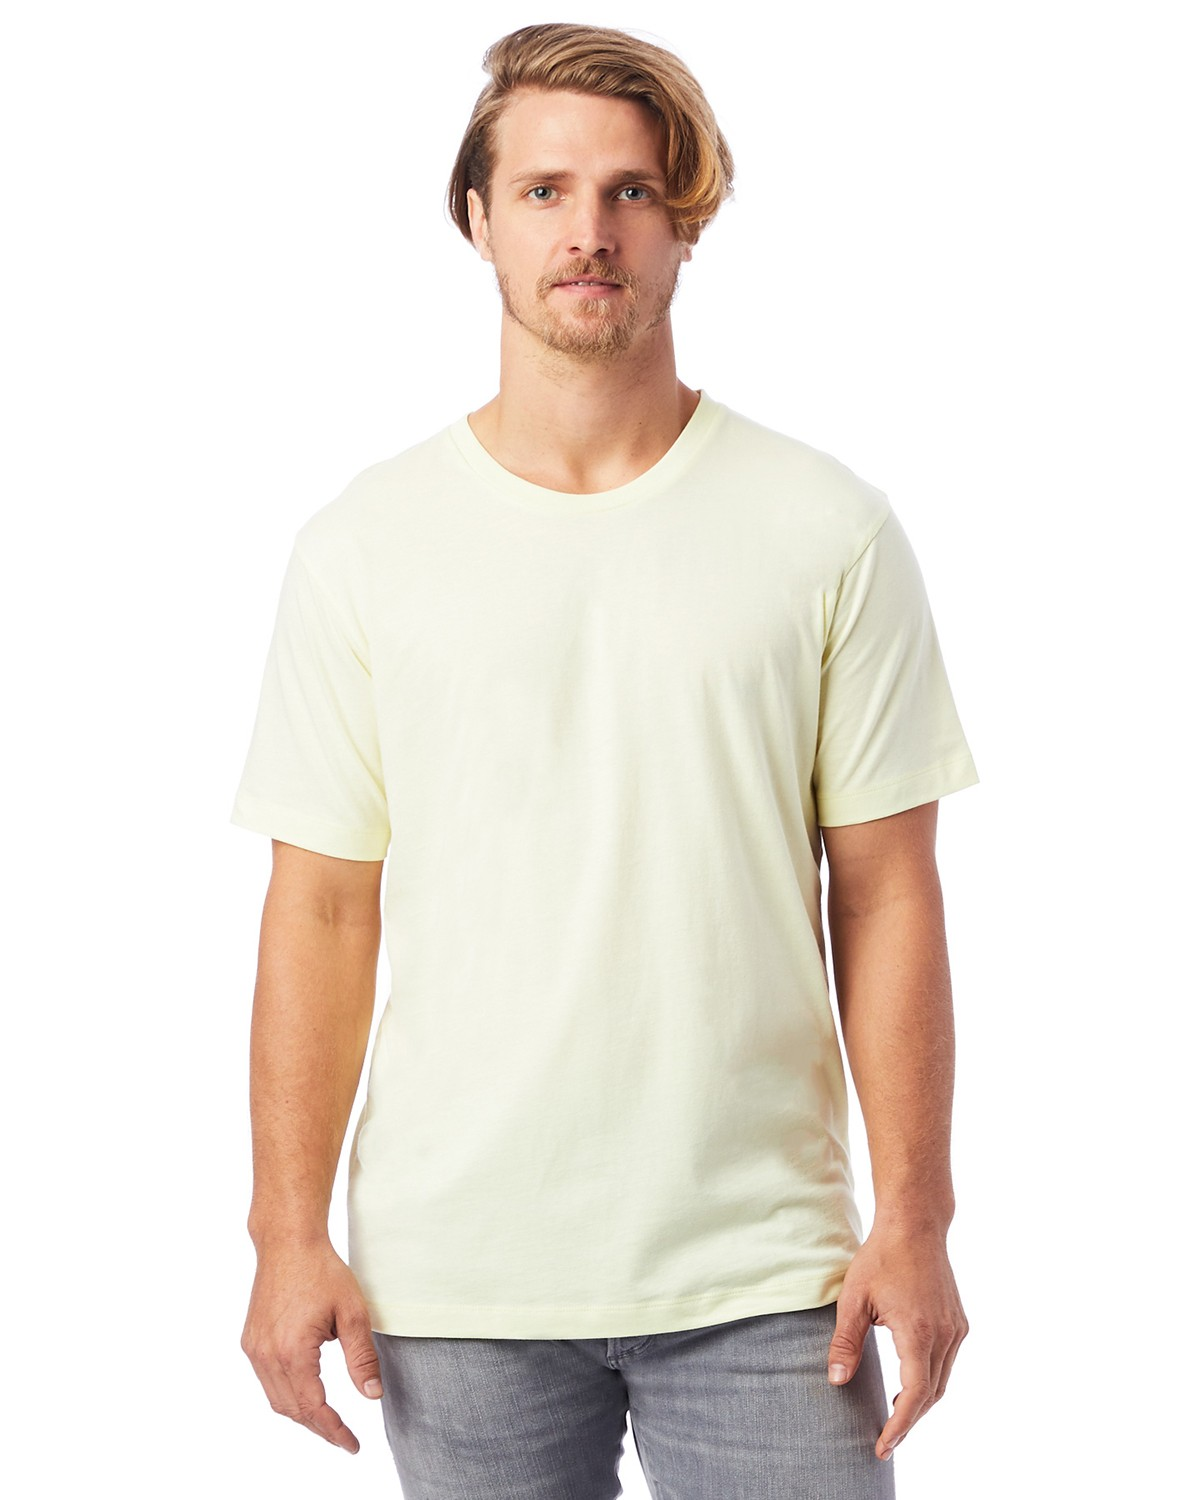 AA1070 Alternative PALE YELLOW